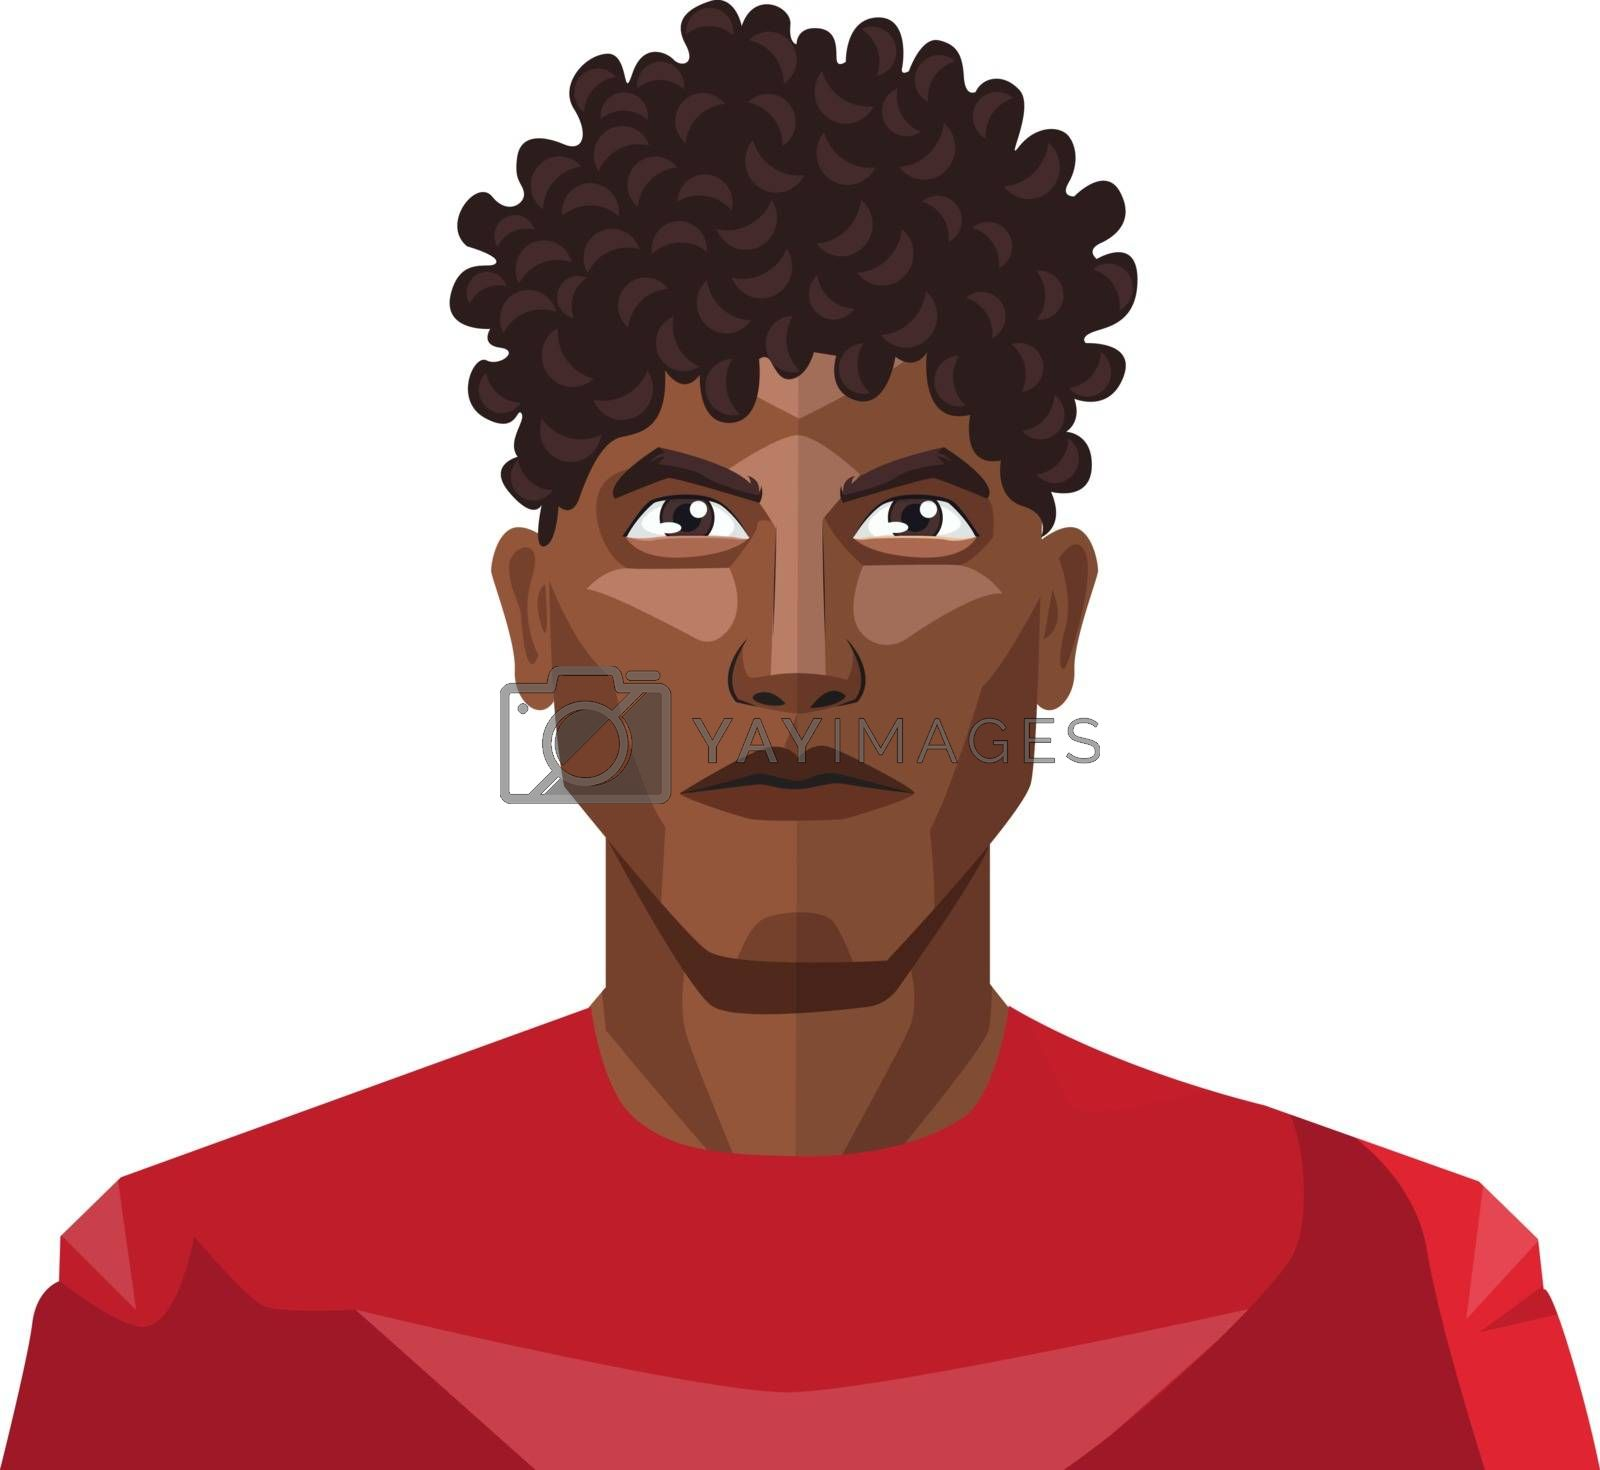 Royalty free image of Pretty guy wearing a red shirt and curly hair illustration vecto by Morphart